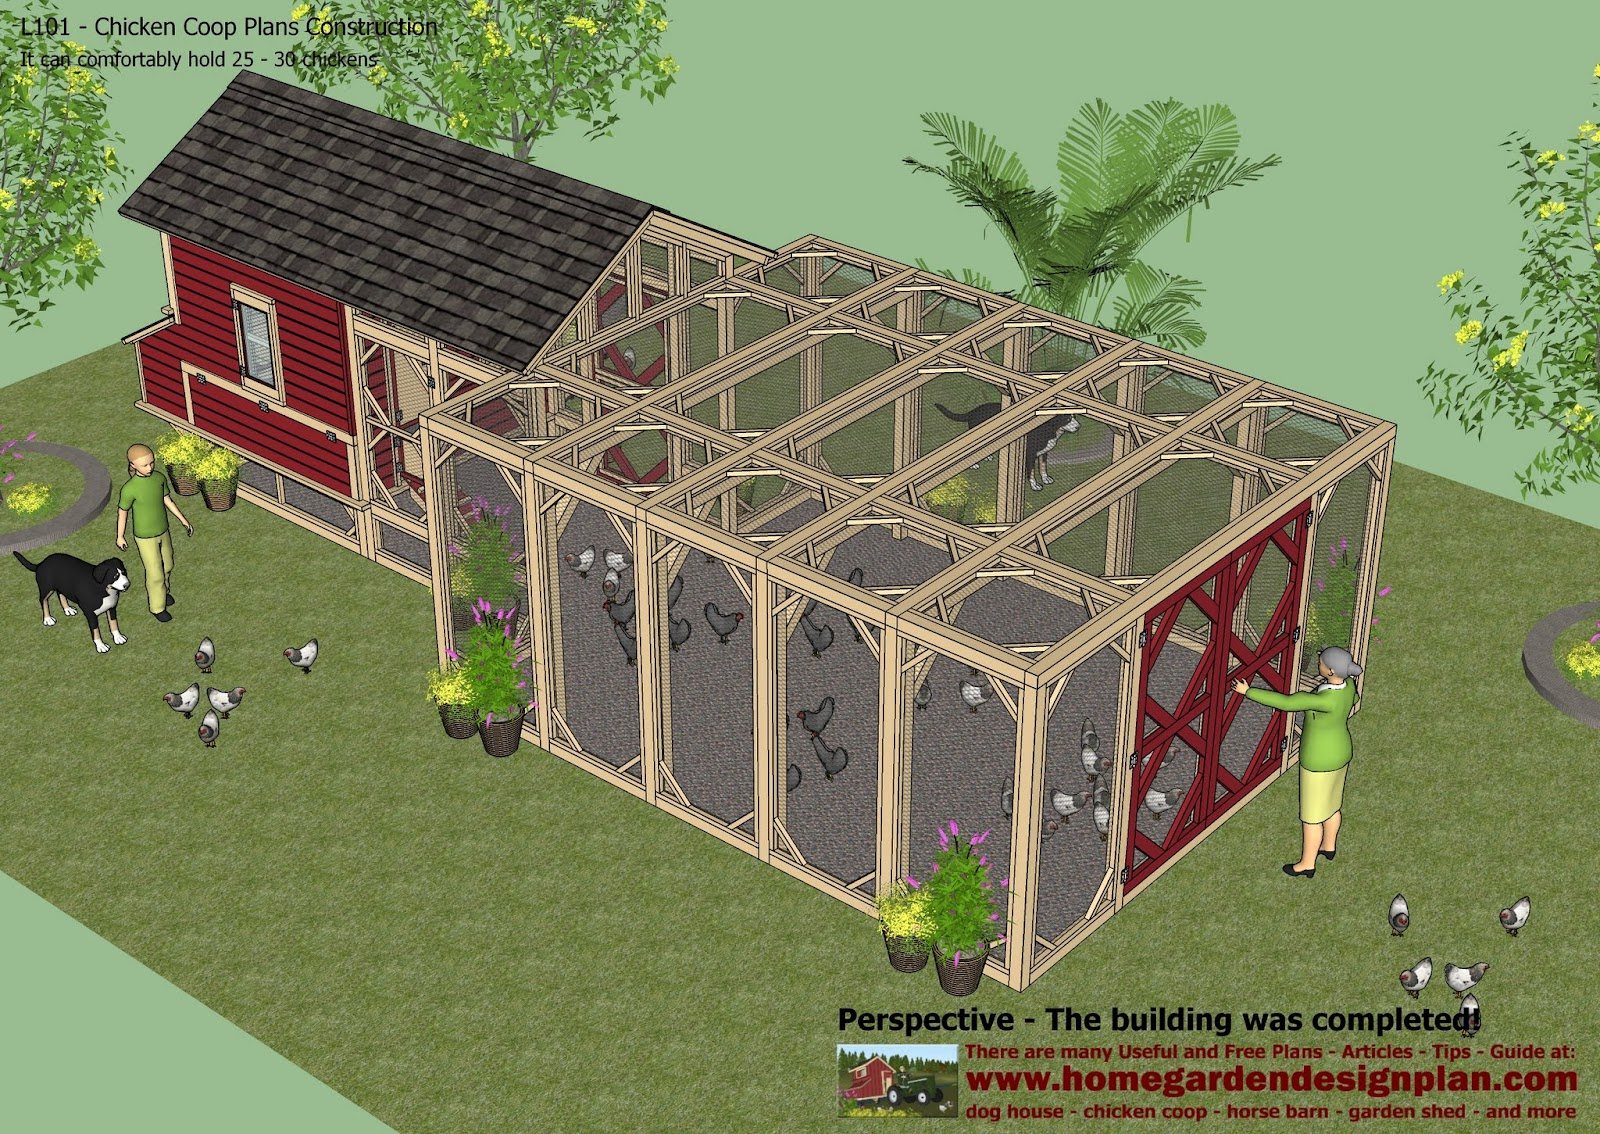 Hens plans how to build a chicken coop for 20 for Garden home design plans